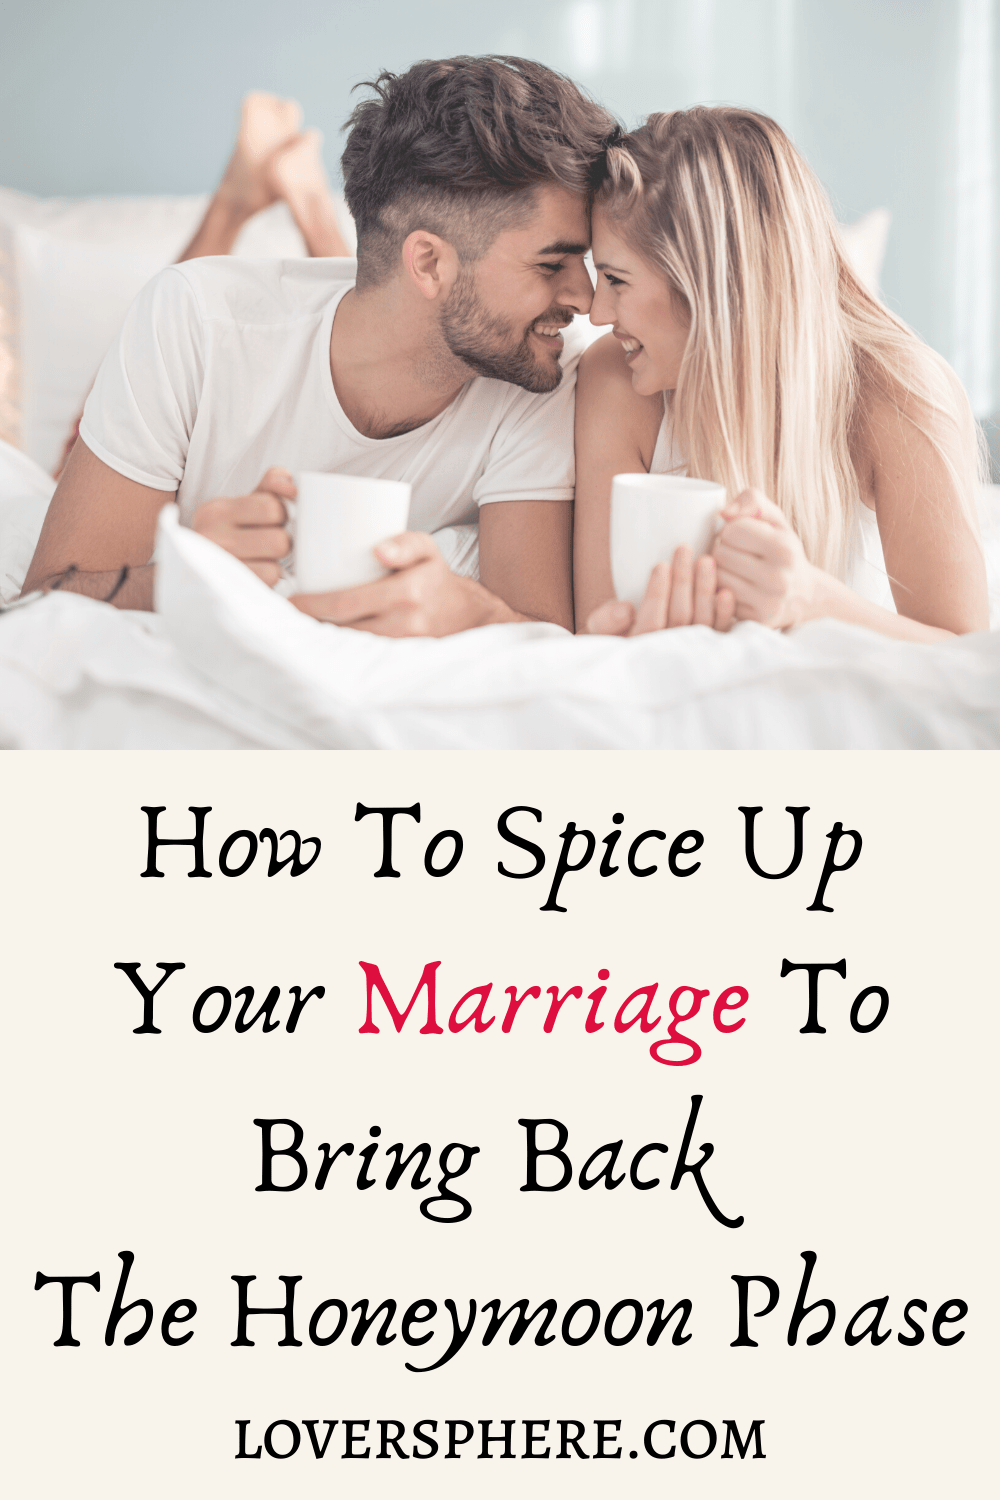 How To Spice Up Your Marriage To Bring Back The Honeymoon Phase